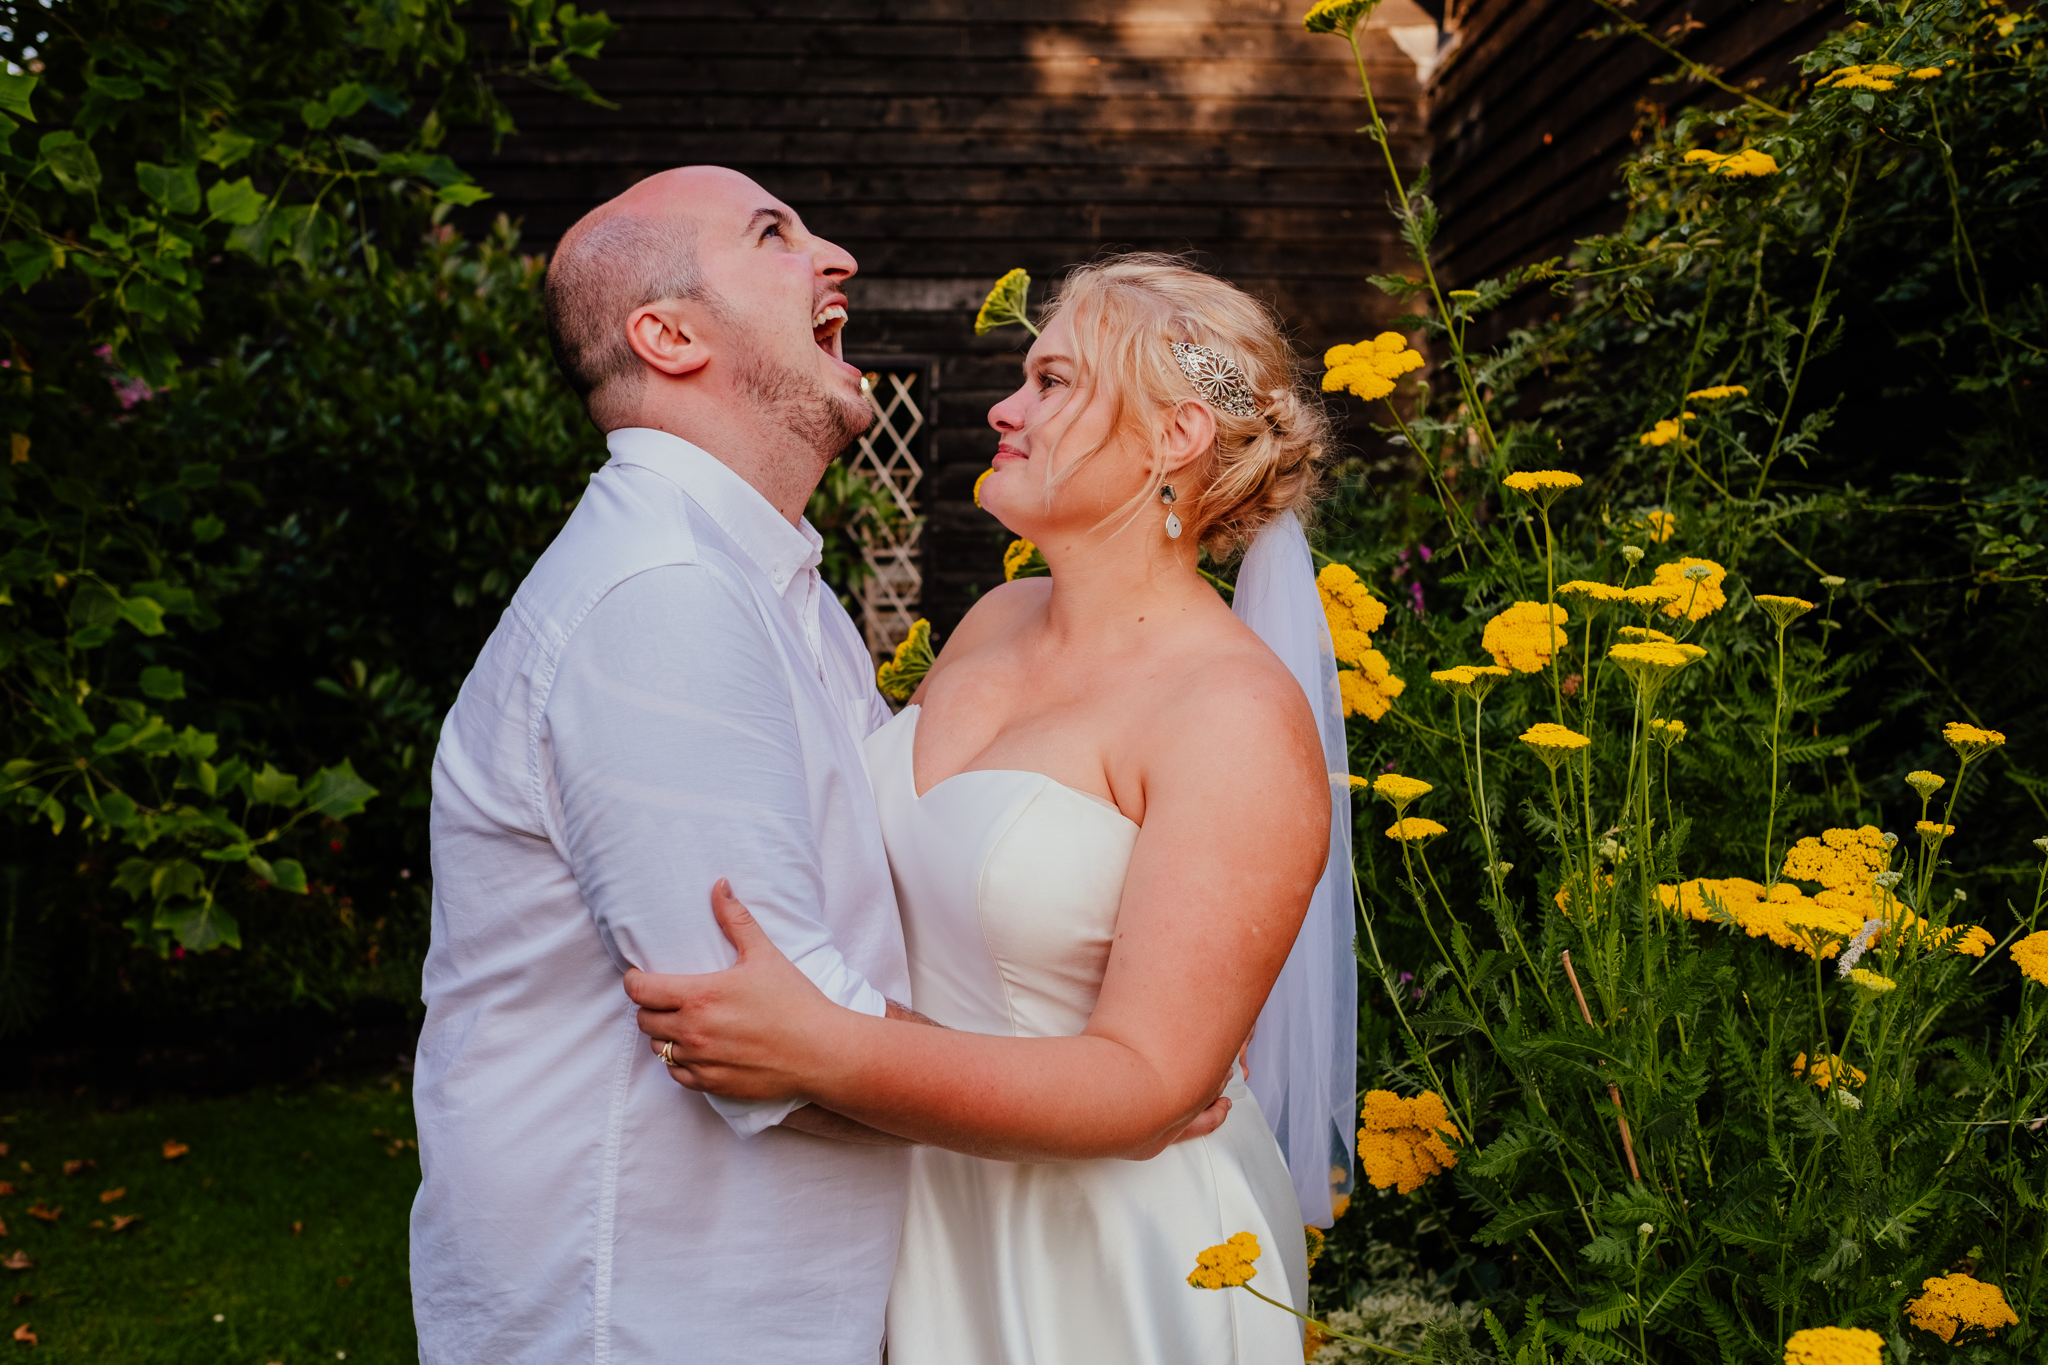 Bride watches groom laugh during golden hour at Rumbolds Farm